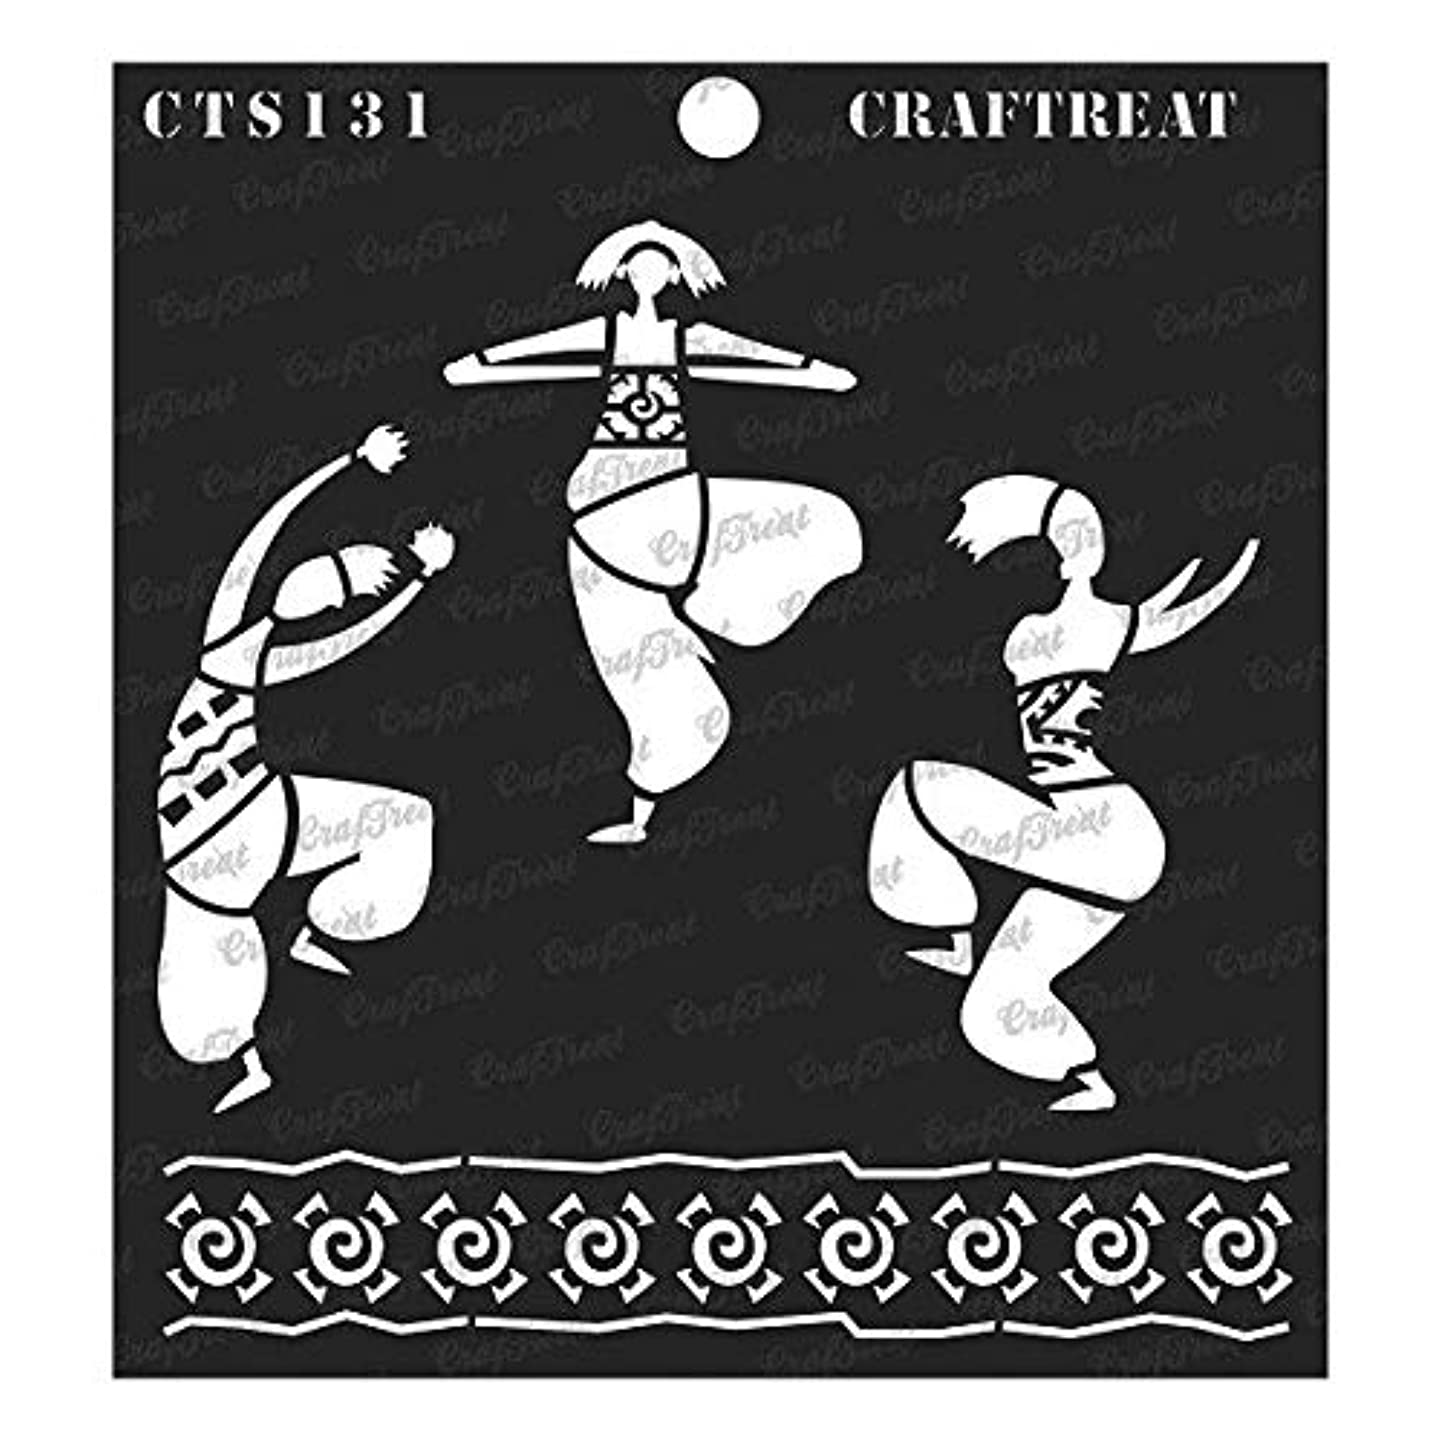 CrafTreat Stencil - Joy of Dancing | Reusable Painting Template for Journal, Notebook, Home Decor, Crafting, DIY Albums, Scrapbook and Printing on Paper, Floor, Wall, Tile, Fabric, Wood 6